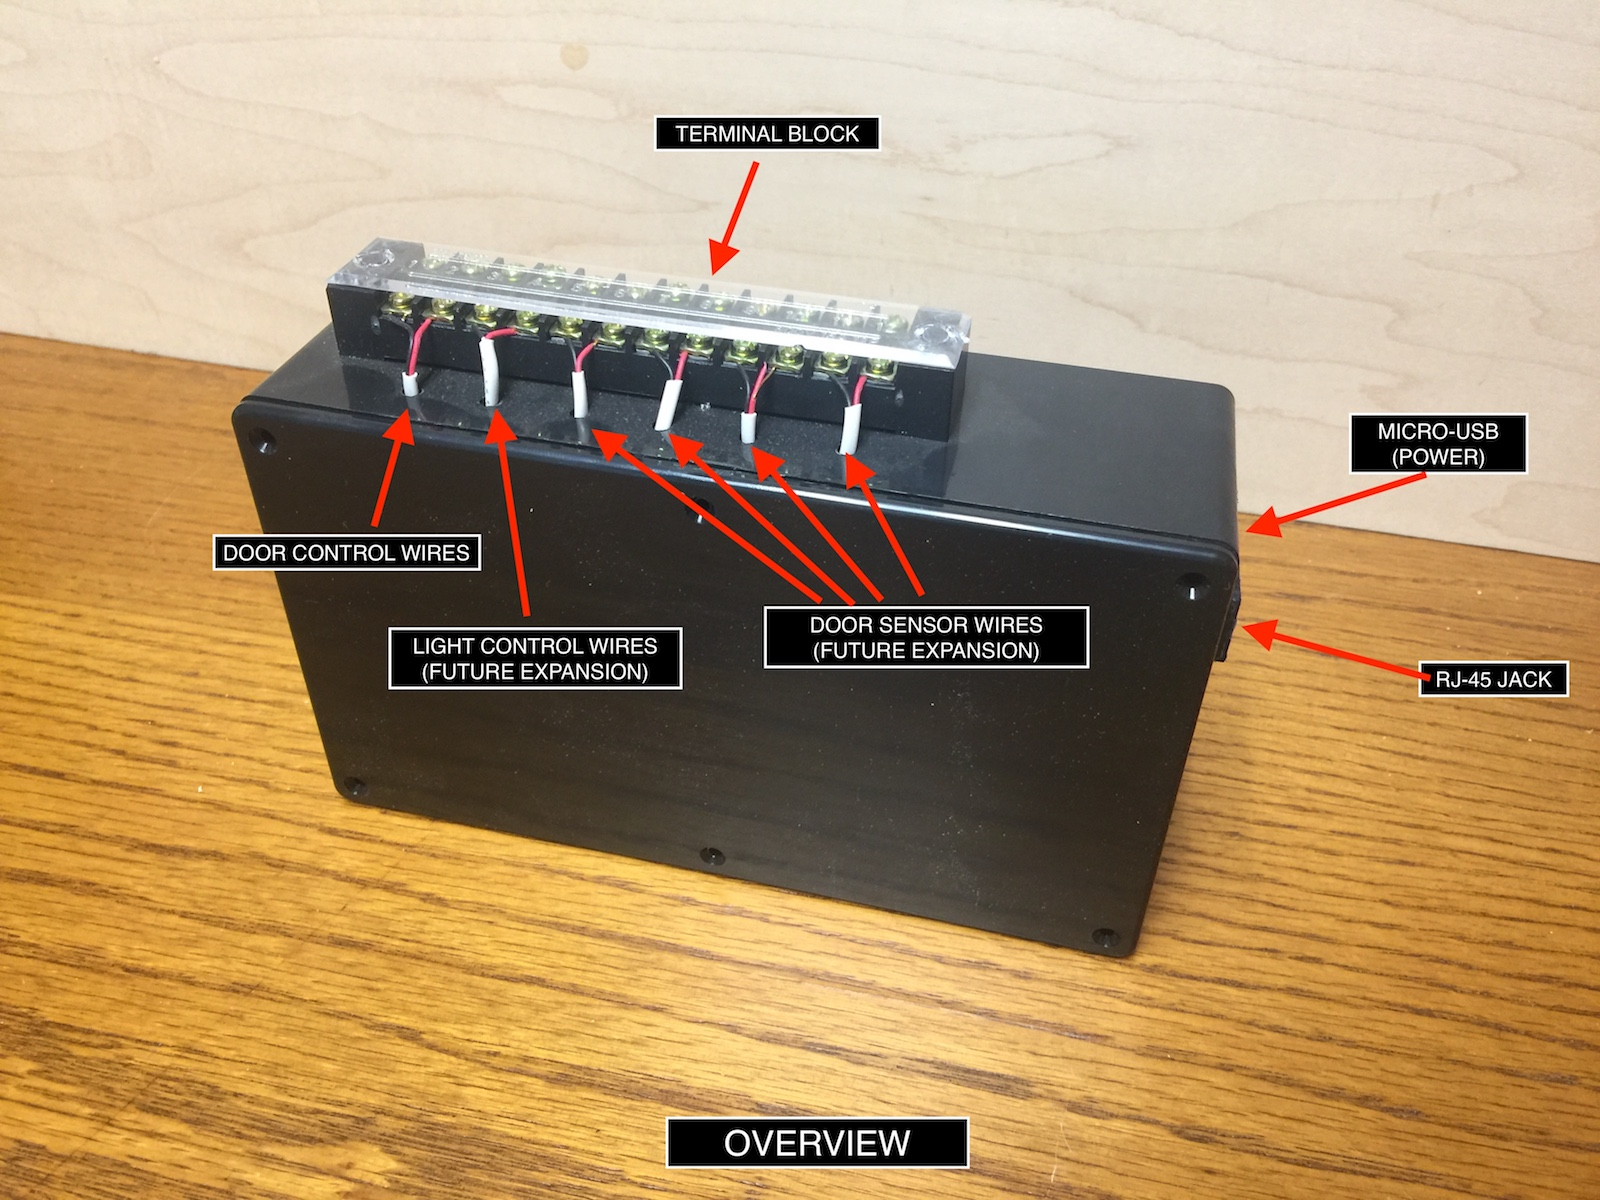 hight resolution of fig 1 external overview of the project with the lid to the project box closed